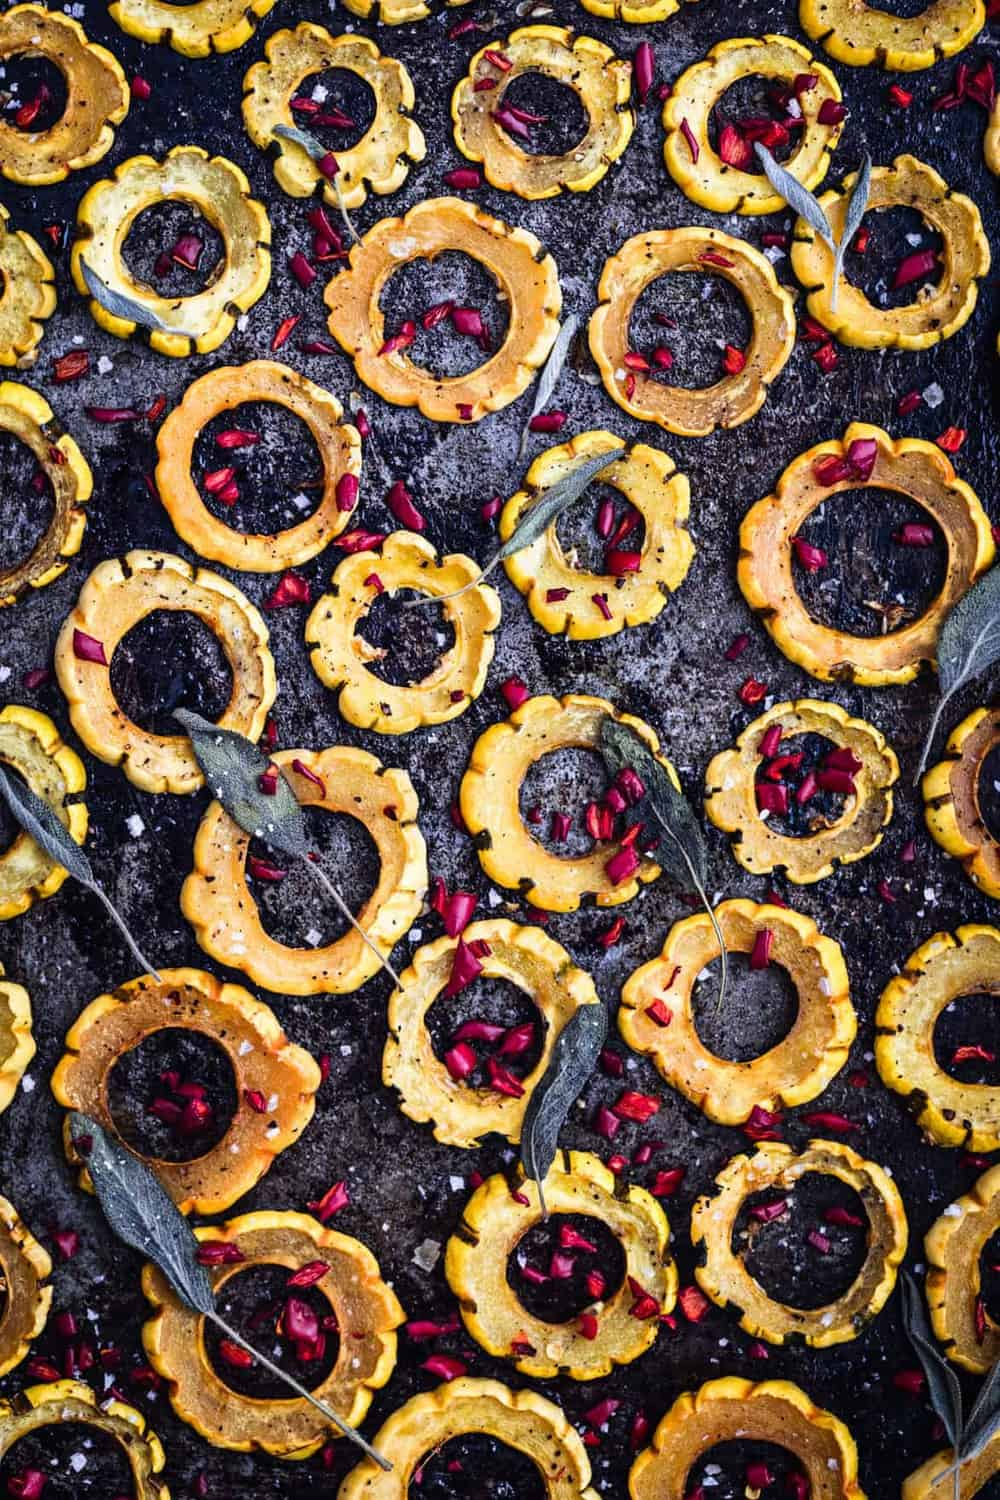 Sliced roasted squash rings on baking sheet, topped with chilies and fresh sage leaves, up close. Post-oven.